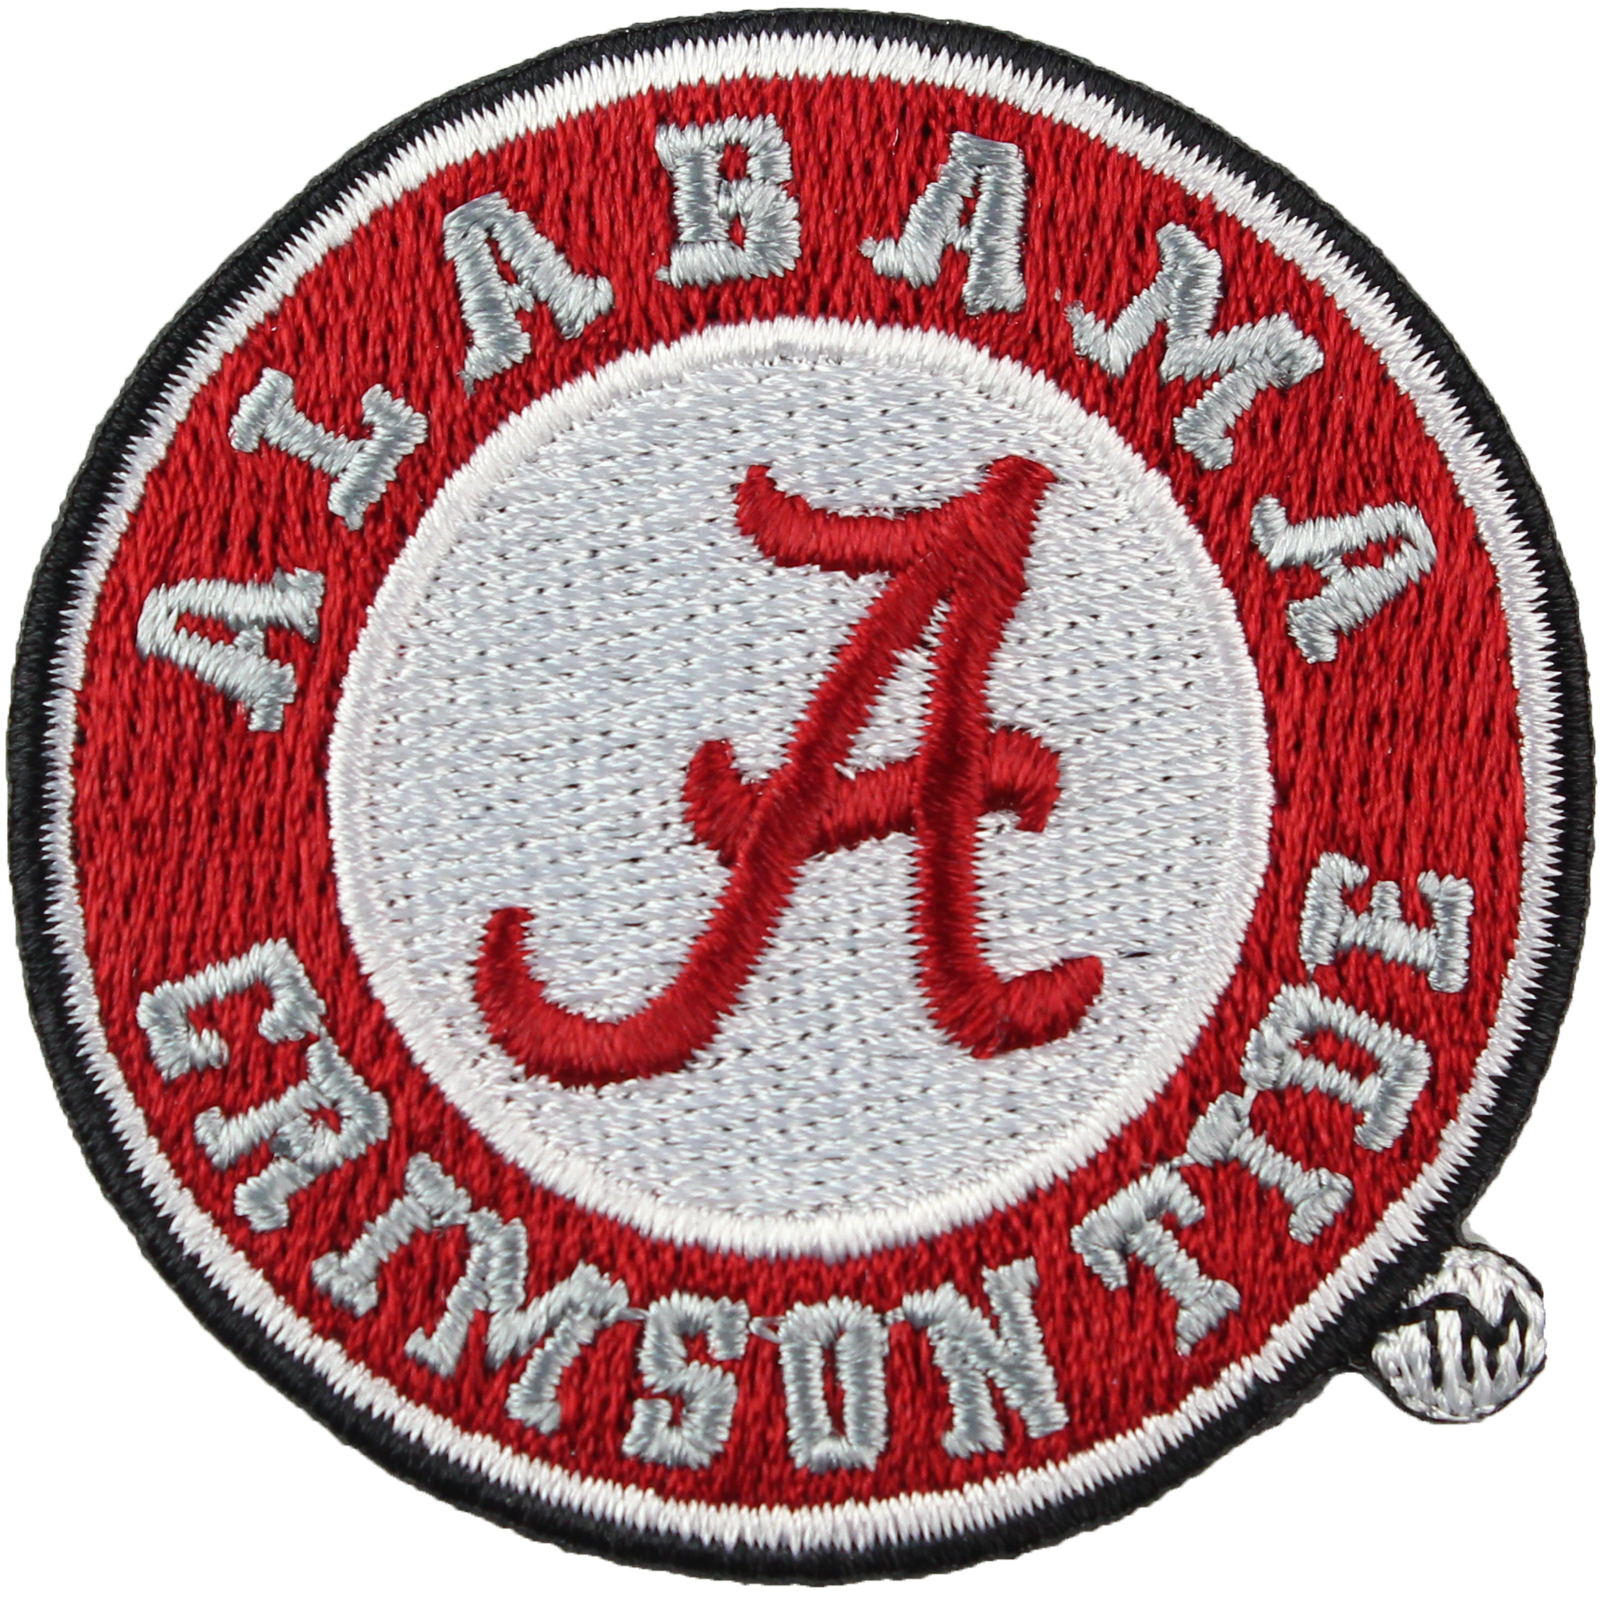 Details about Alabama Crimson Tide Official Round Logo Embroidery Iron On  Patch Hat Football.